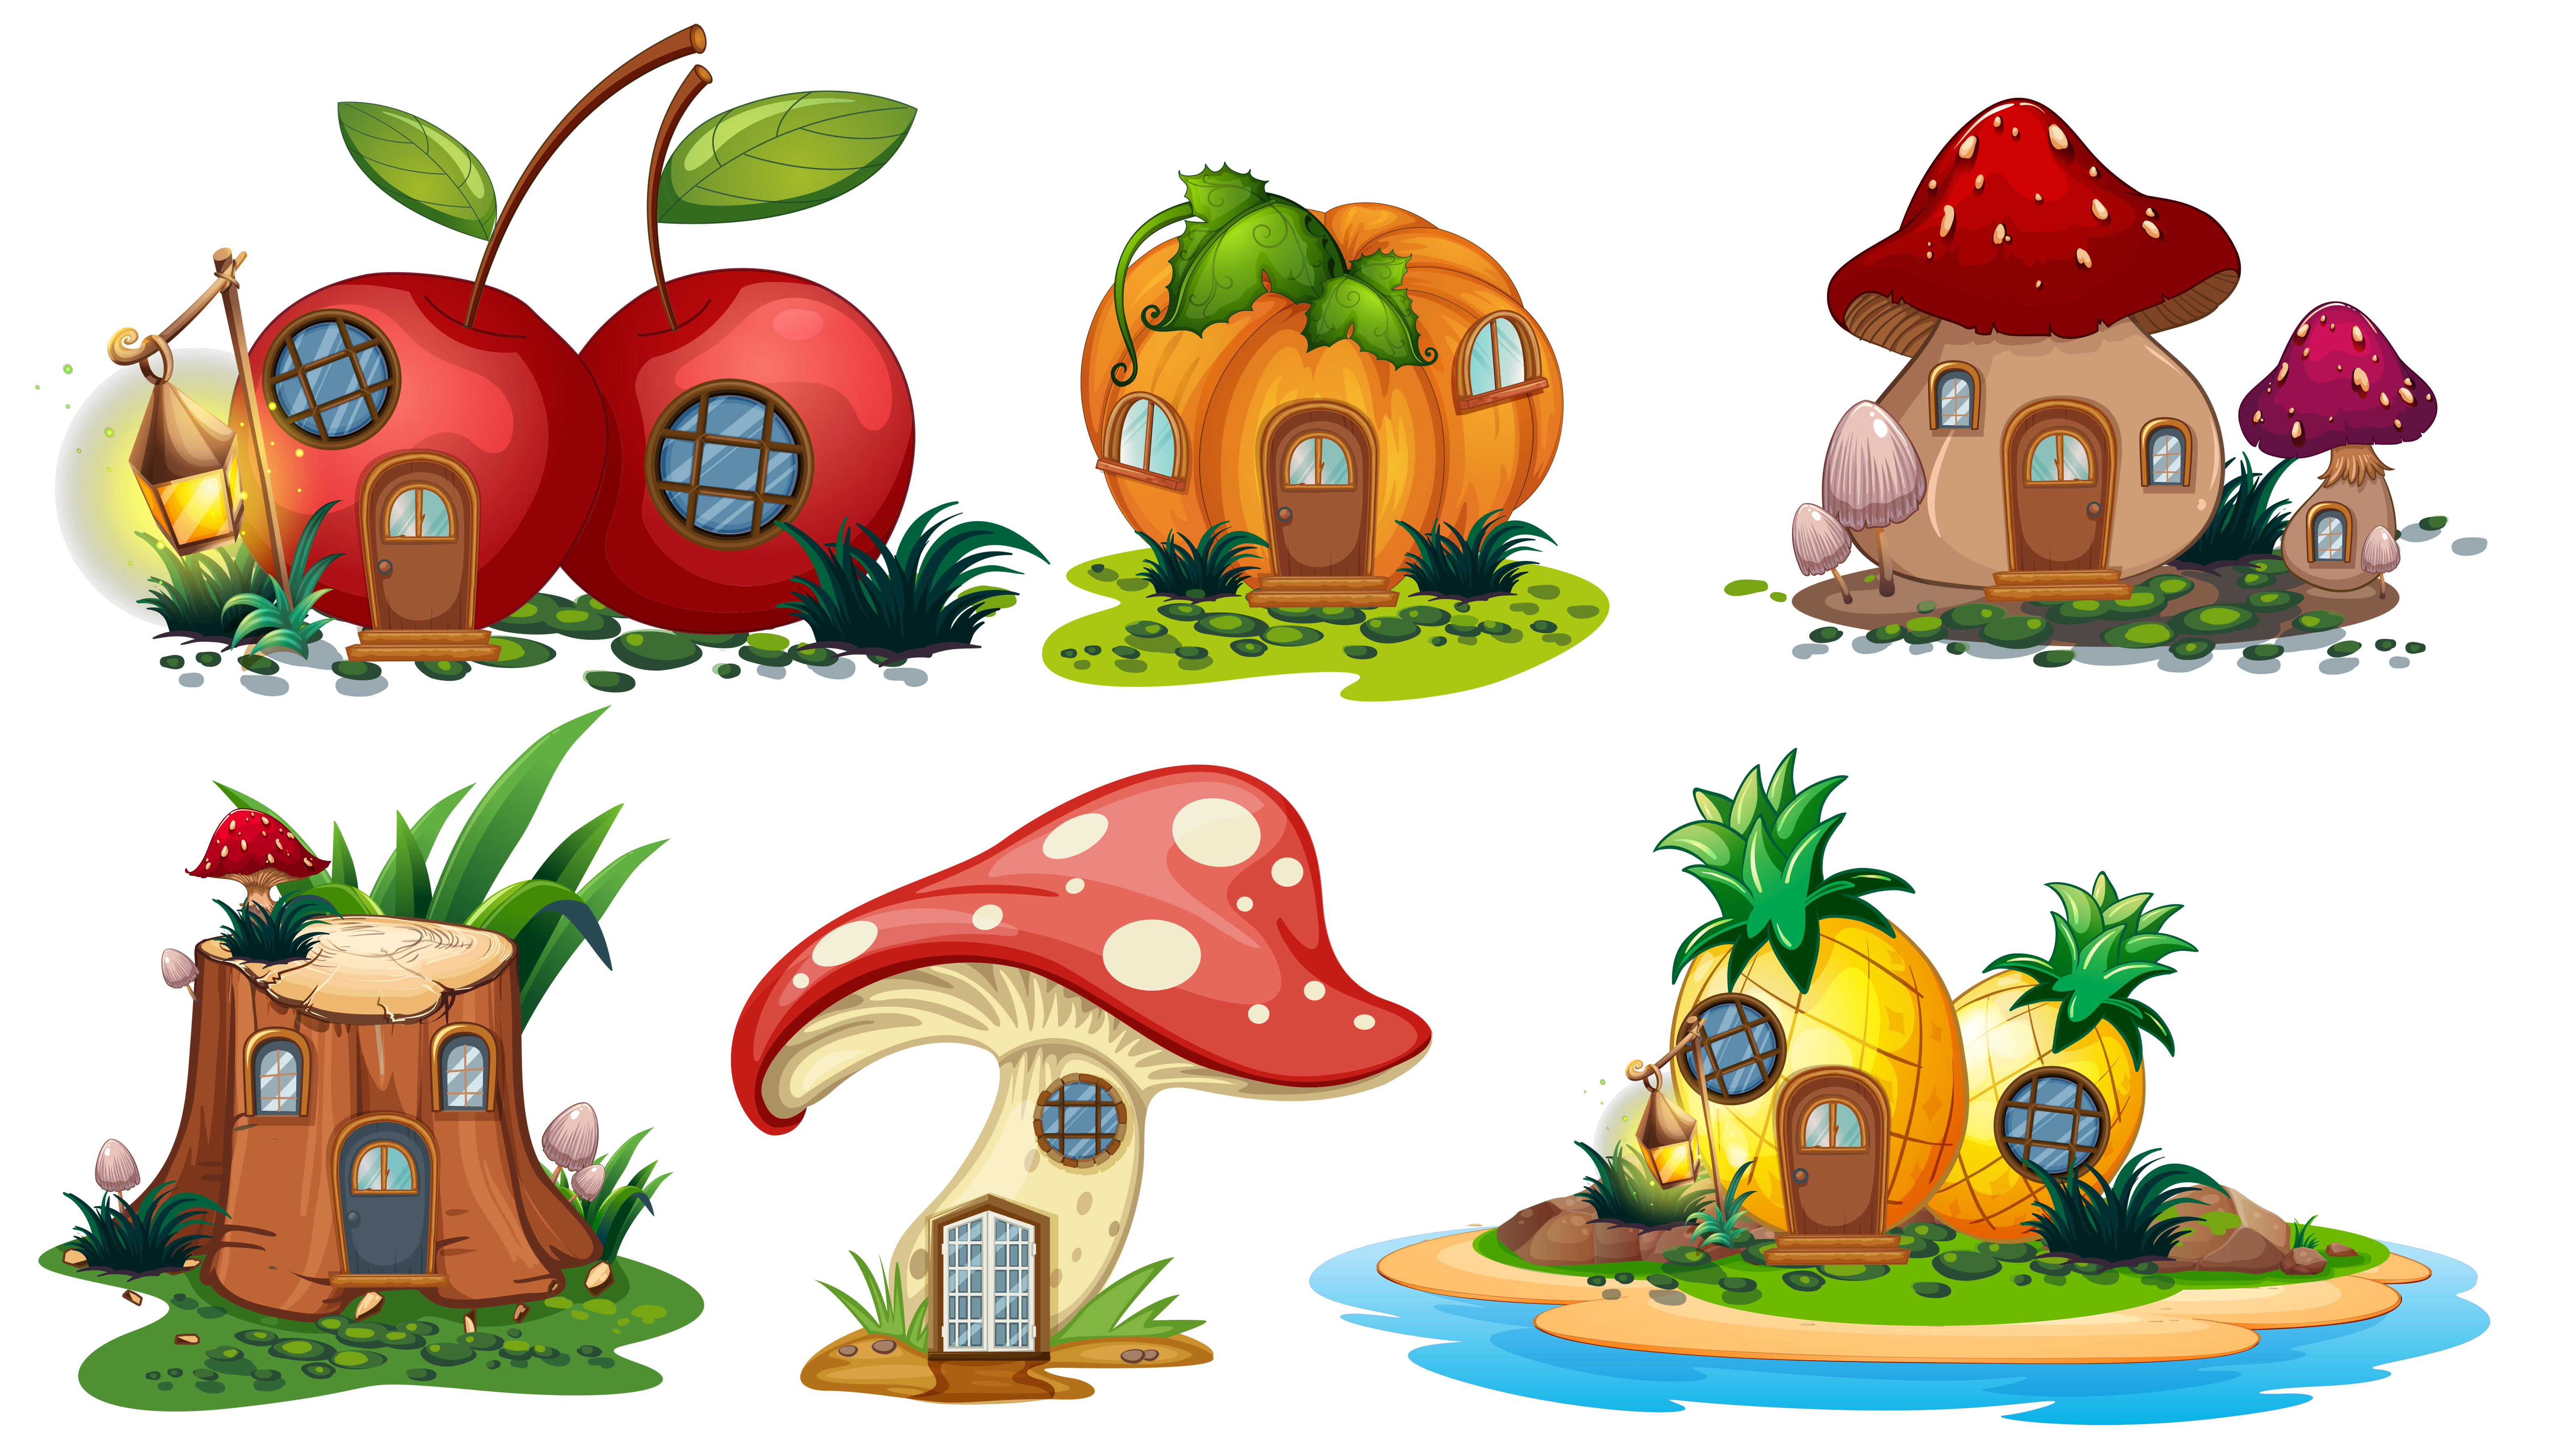 Mushroom And Fruit Houses Download Free Vectors Clipart